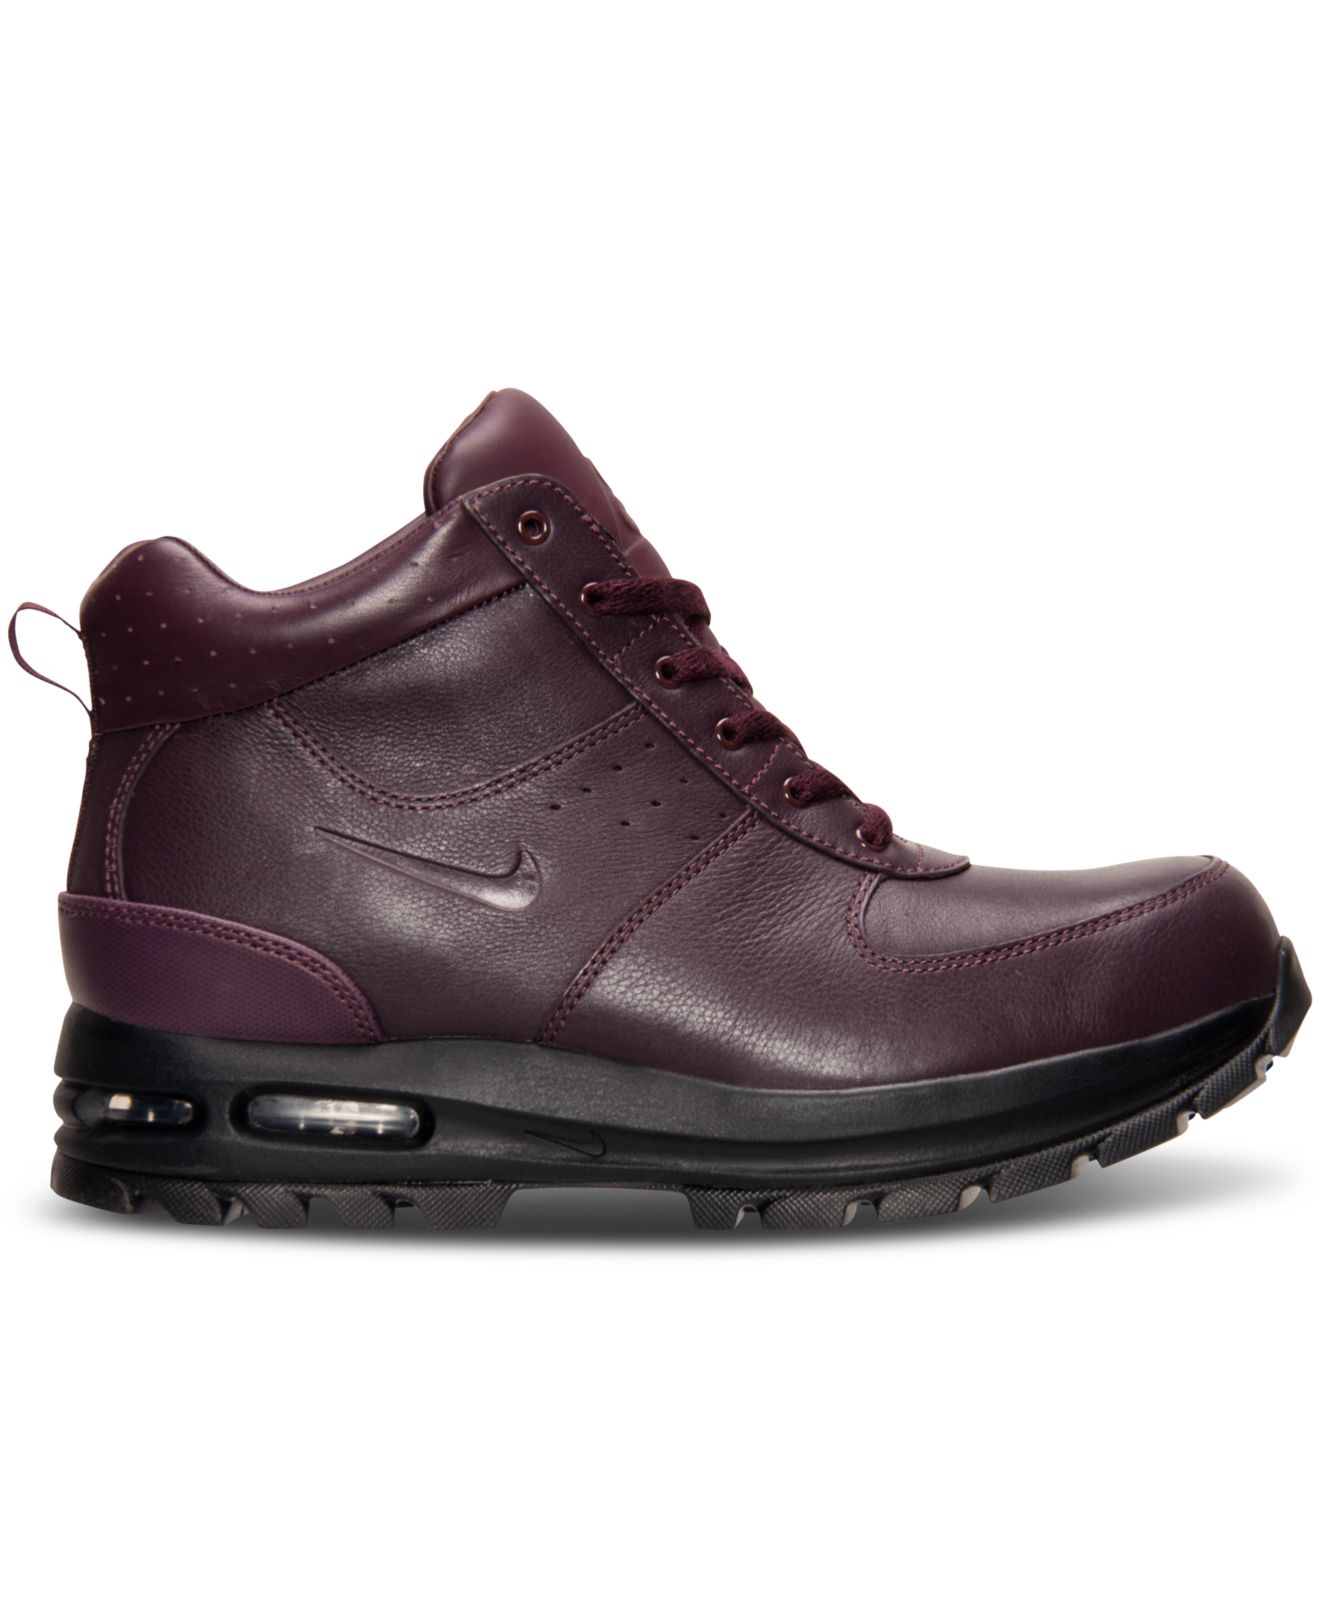 f37230fa014 ... coupon for lyst nike mens air max goaterra boots from finish line in  purple ab6c9 2e358